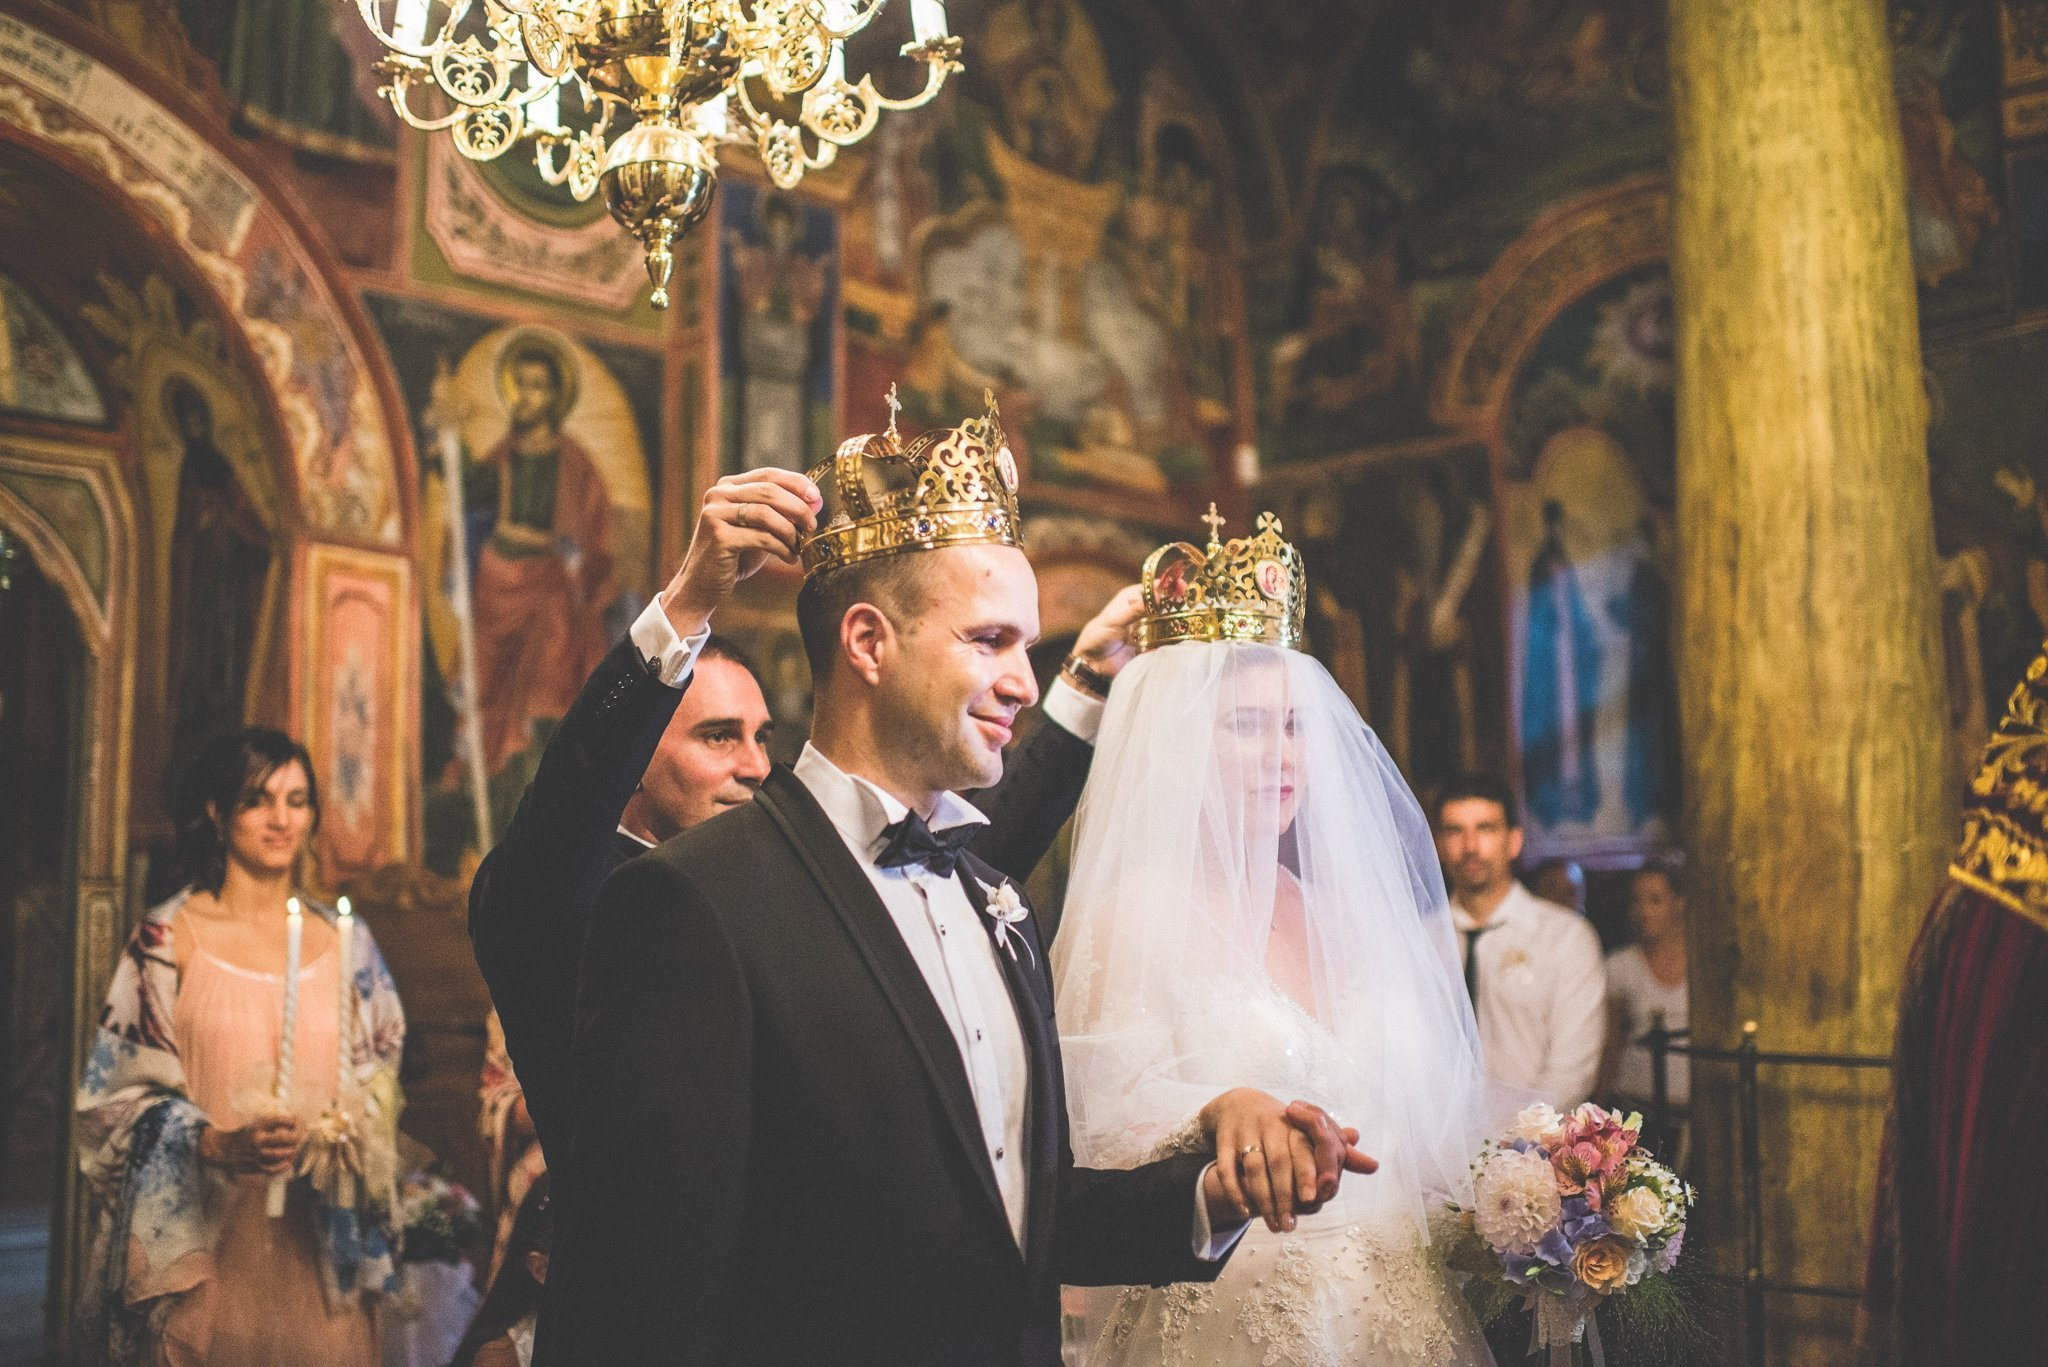 Ornate gold crowns are placed on the couple's heads during their Orthodox wedding ceremony